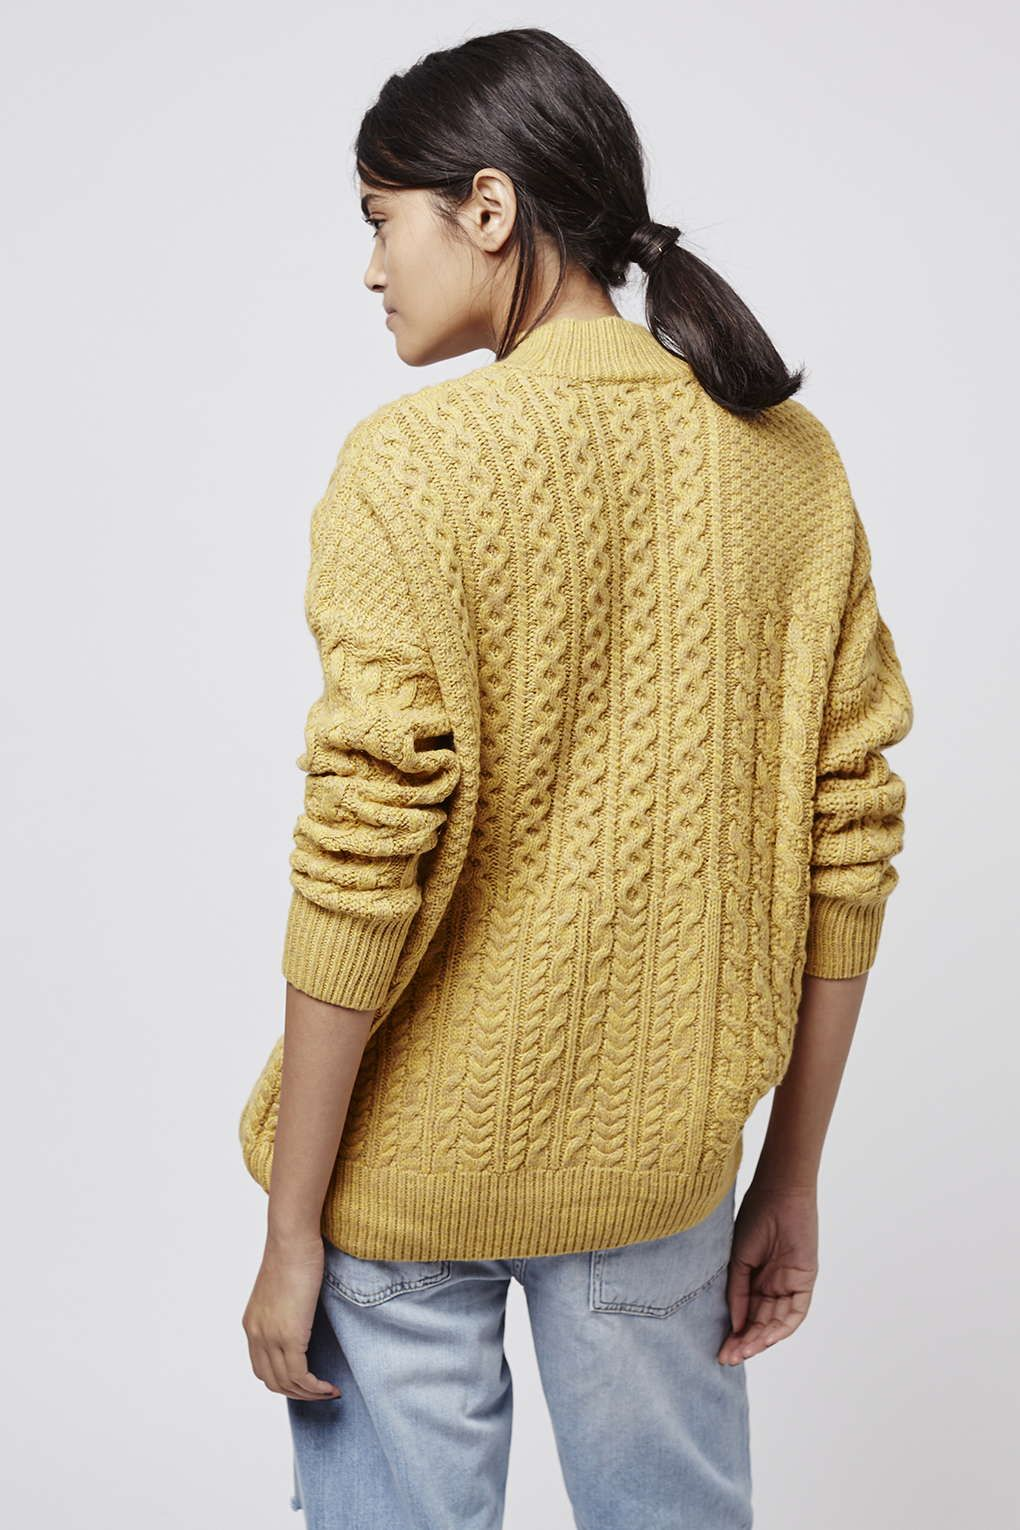 Patchwork Cable Knit Jumper - Knitwear - Clothing - Topshop